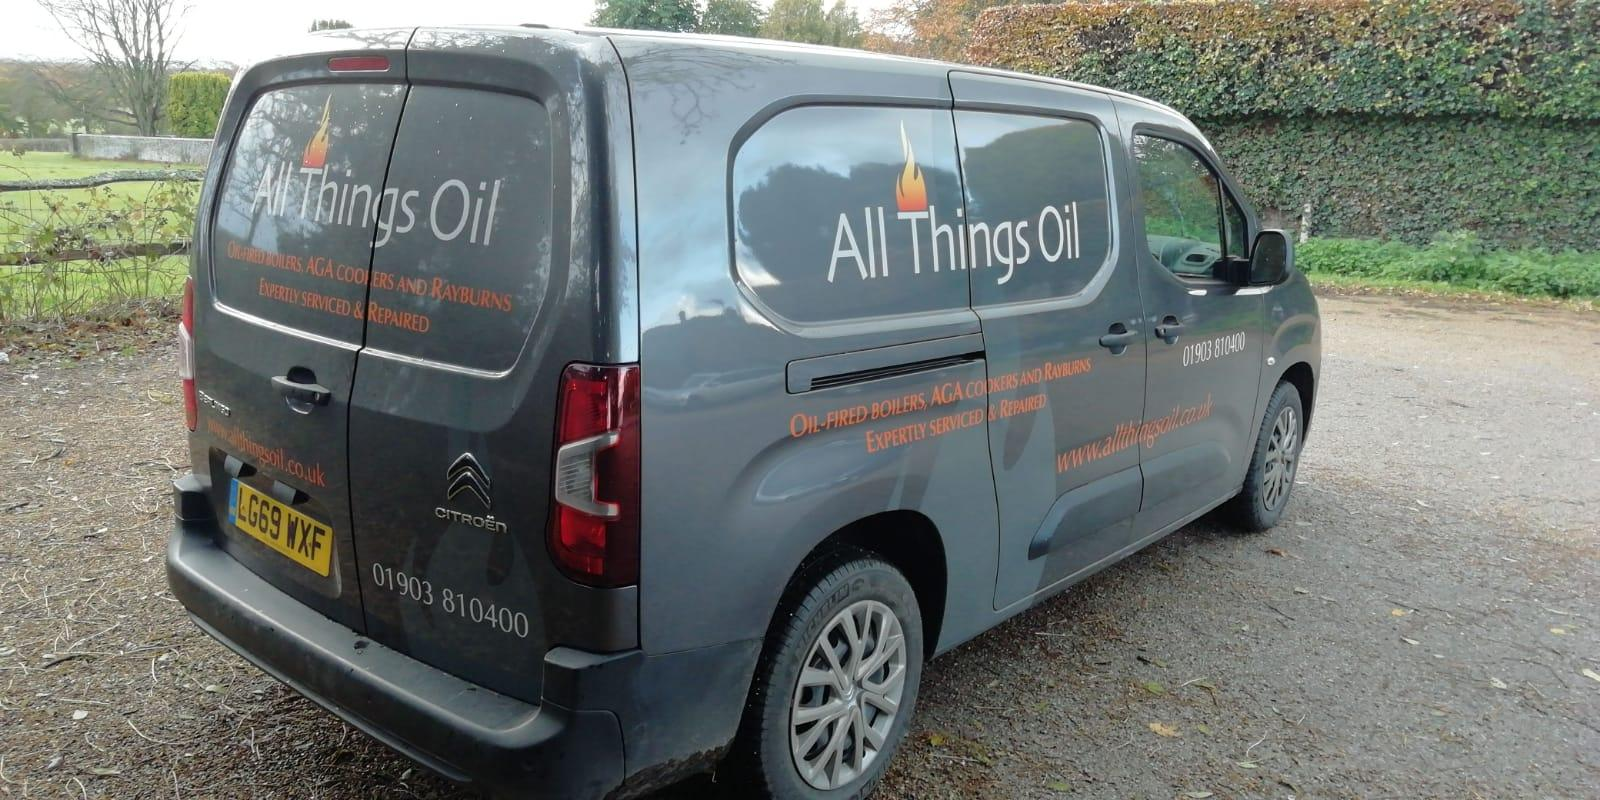 All Things Oil service van